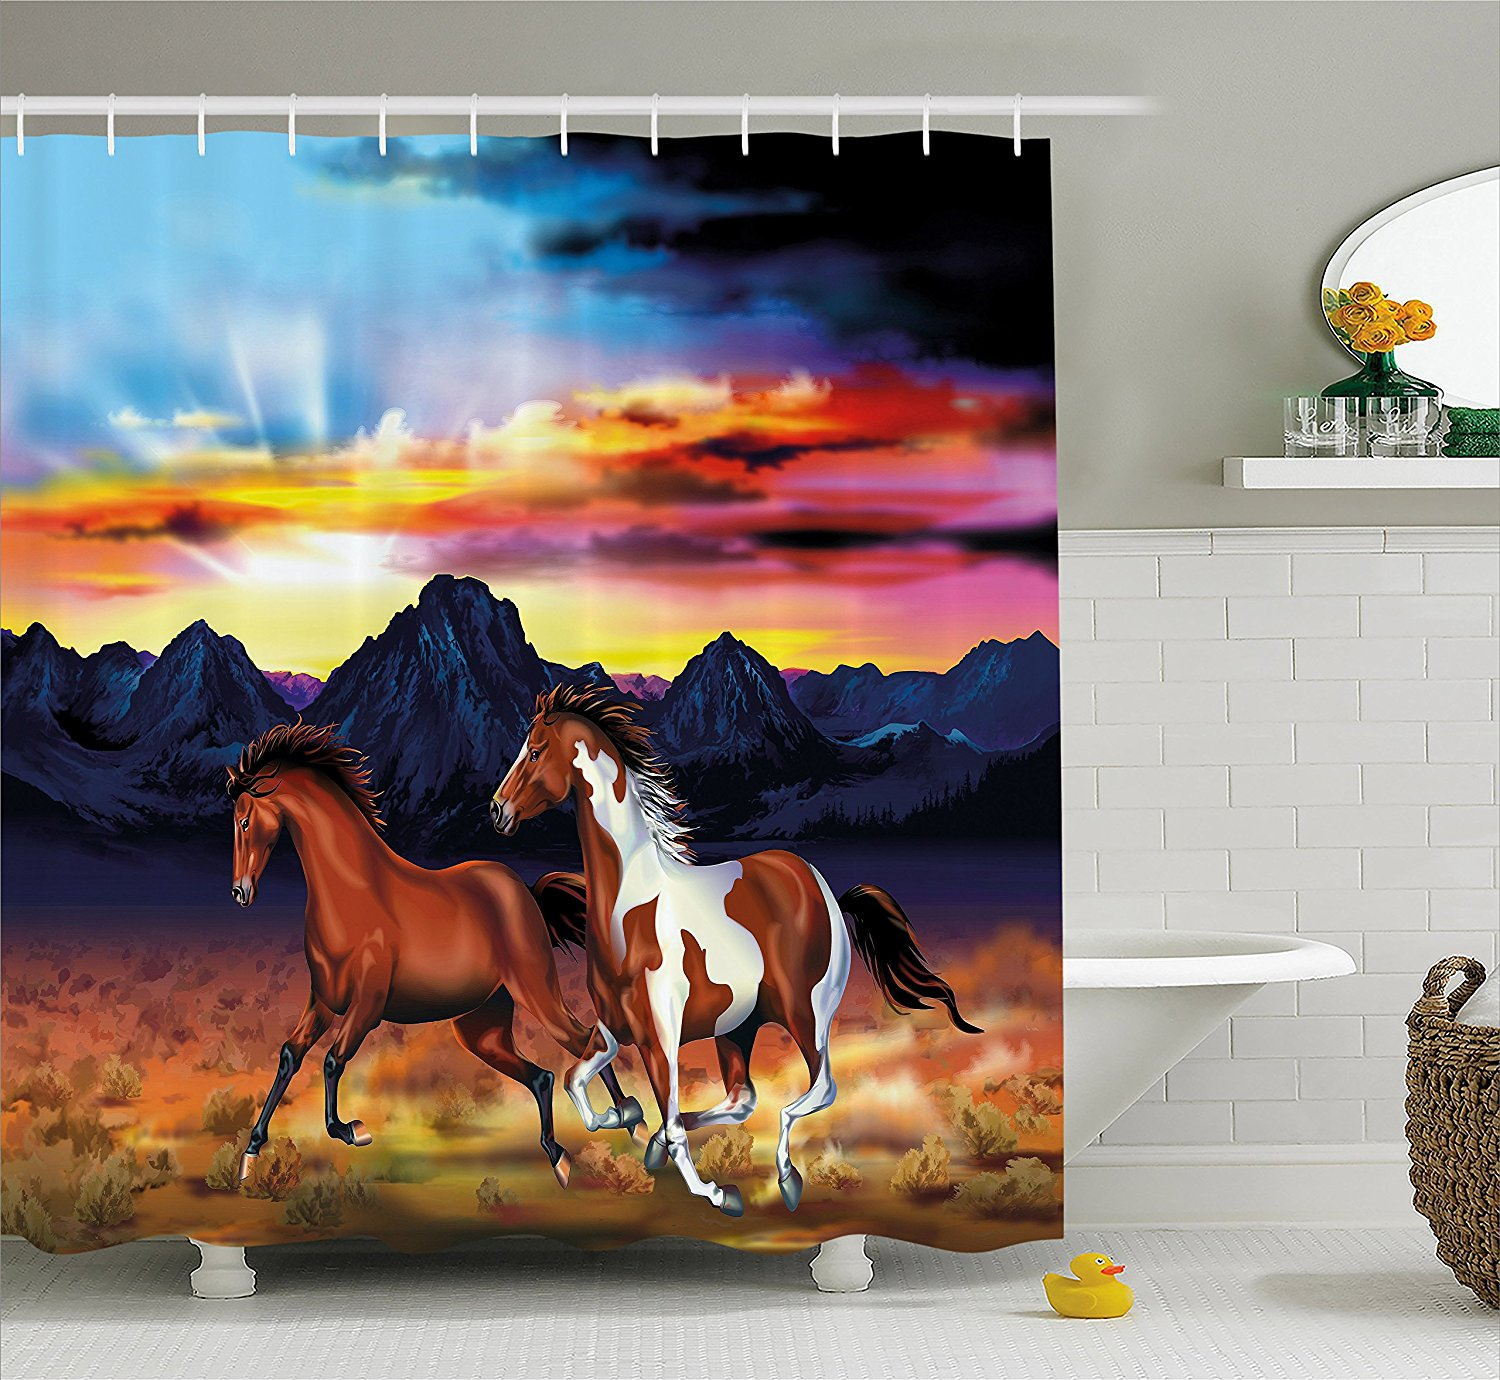 Western Shower Curtain Running Wild Horses at Sunset Artistic Rustic Landscape Colorful Sky Illustration Decor Set with Hooks